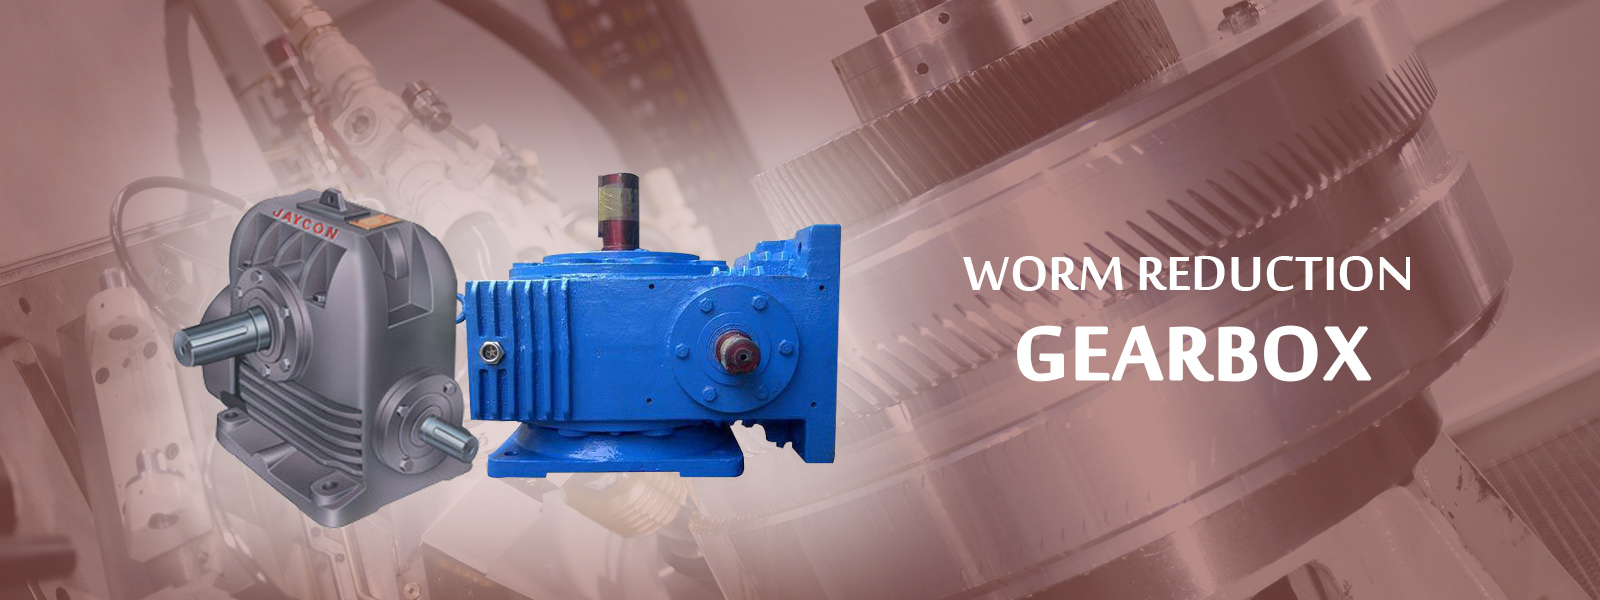 worm reduction gearbox